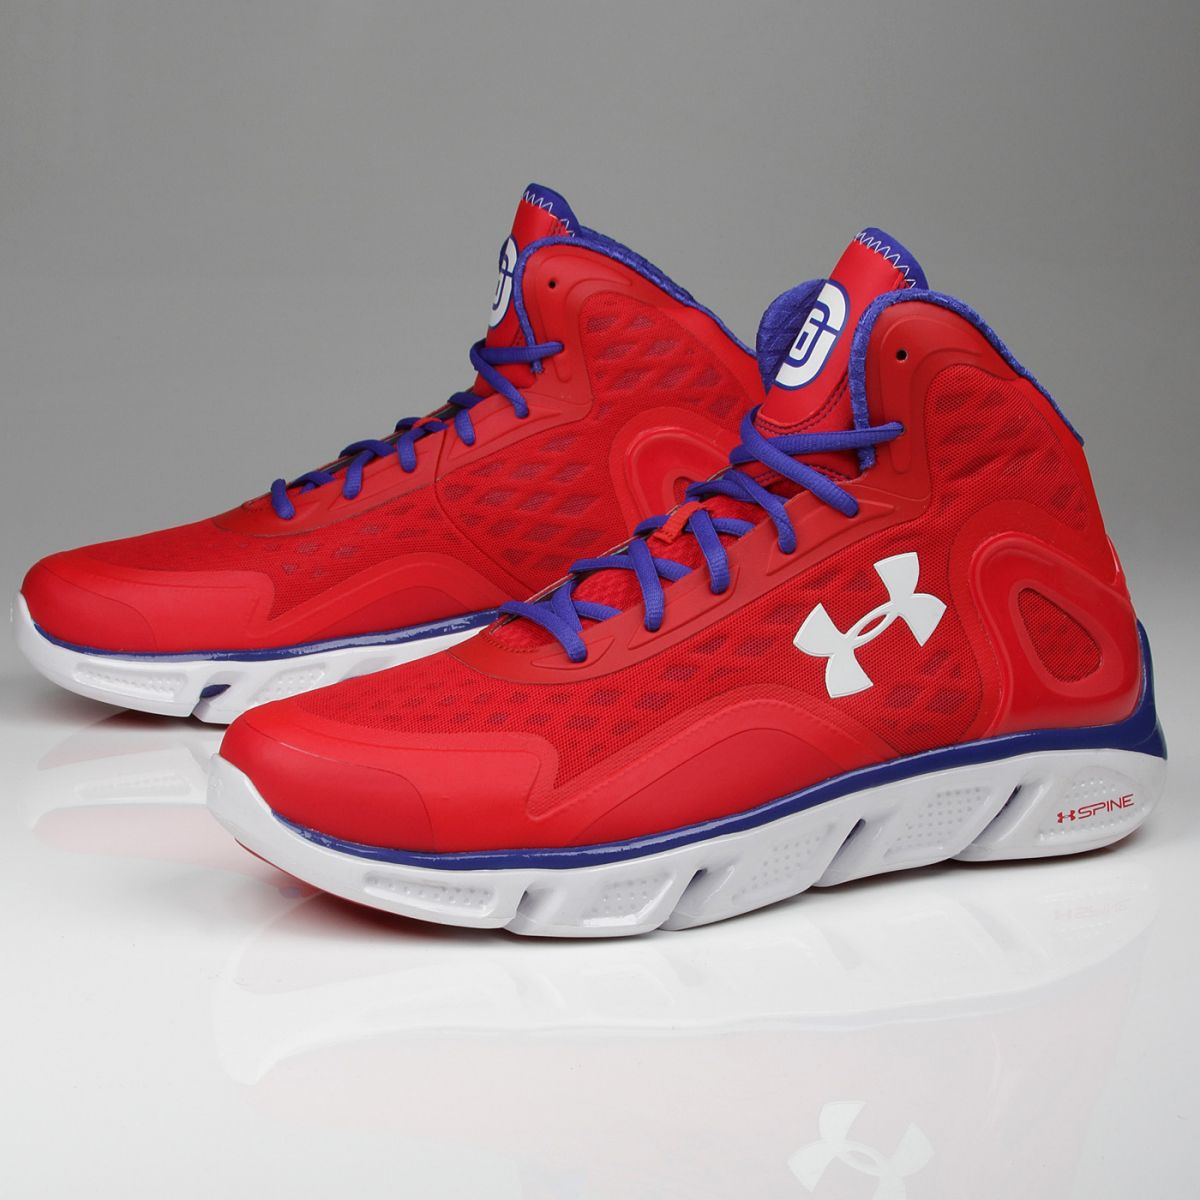 Red Under Armour Spine Shoes